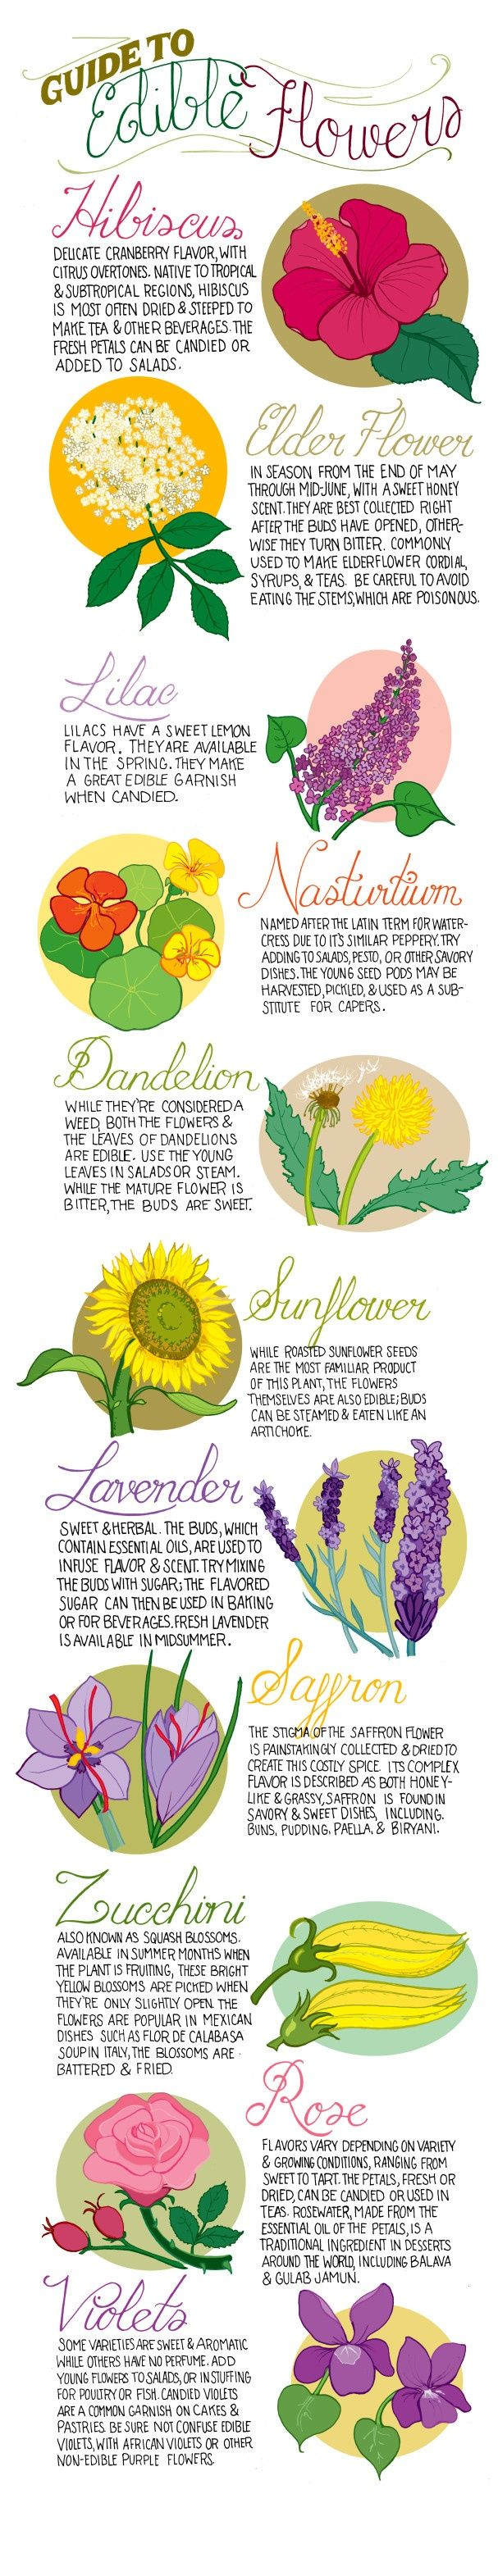 Guide of Edible Flowers.